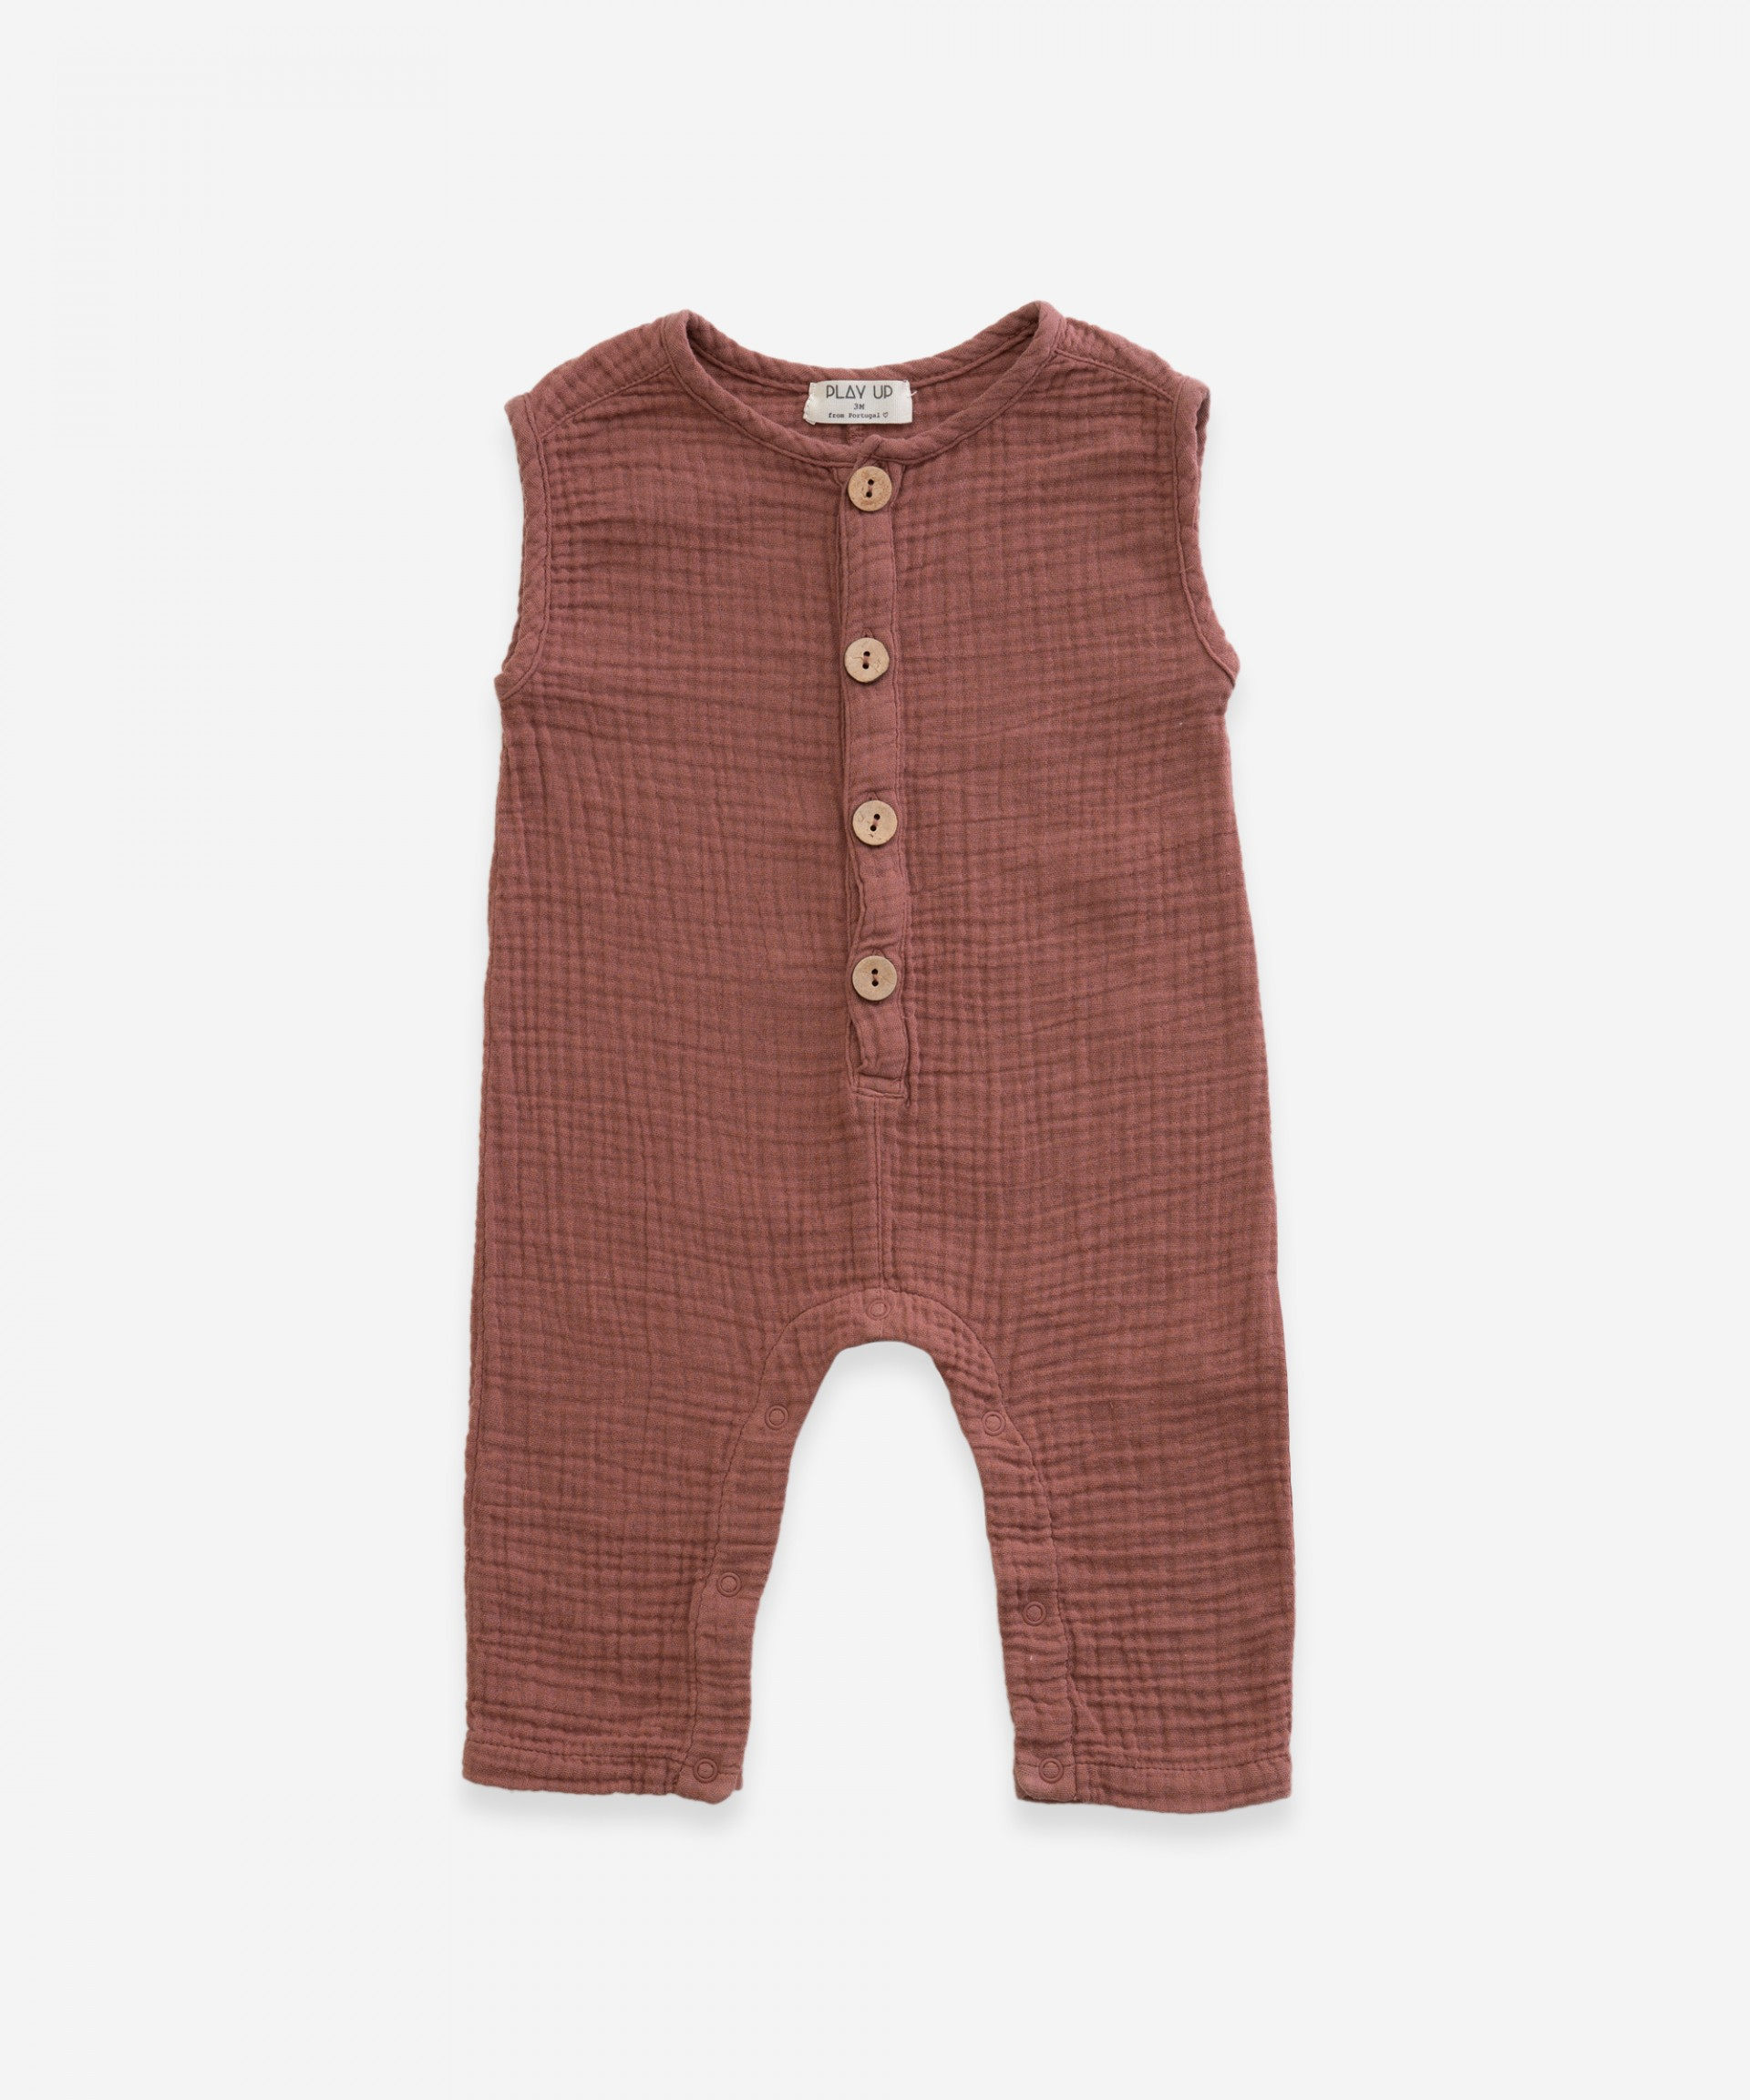 Jumpsuit with front opening | Weaving